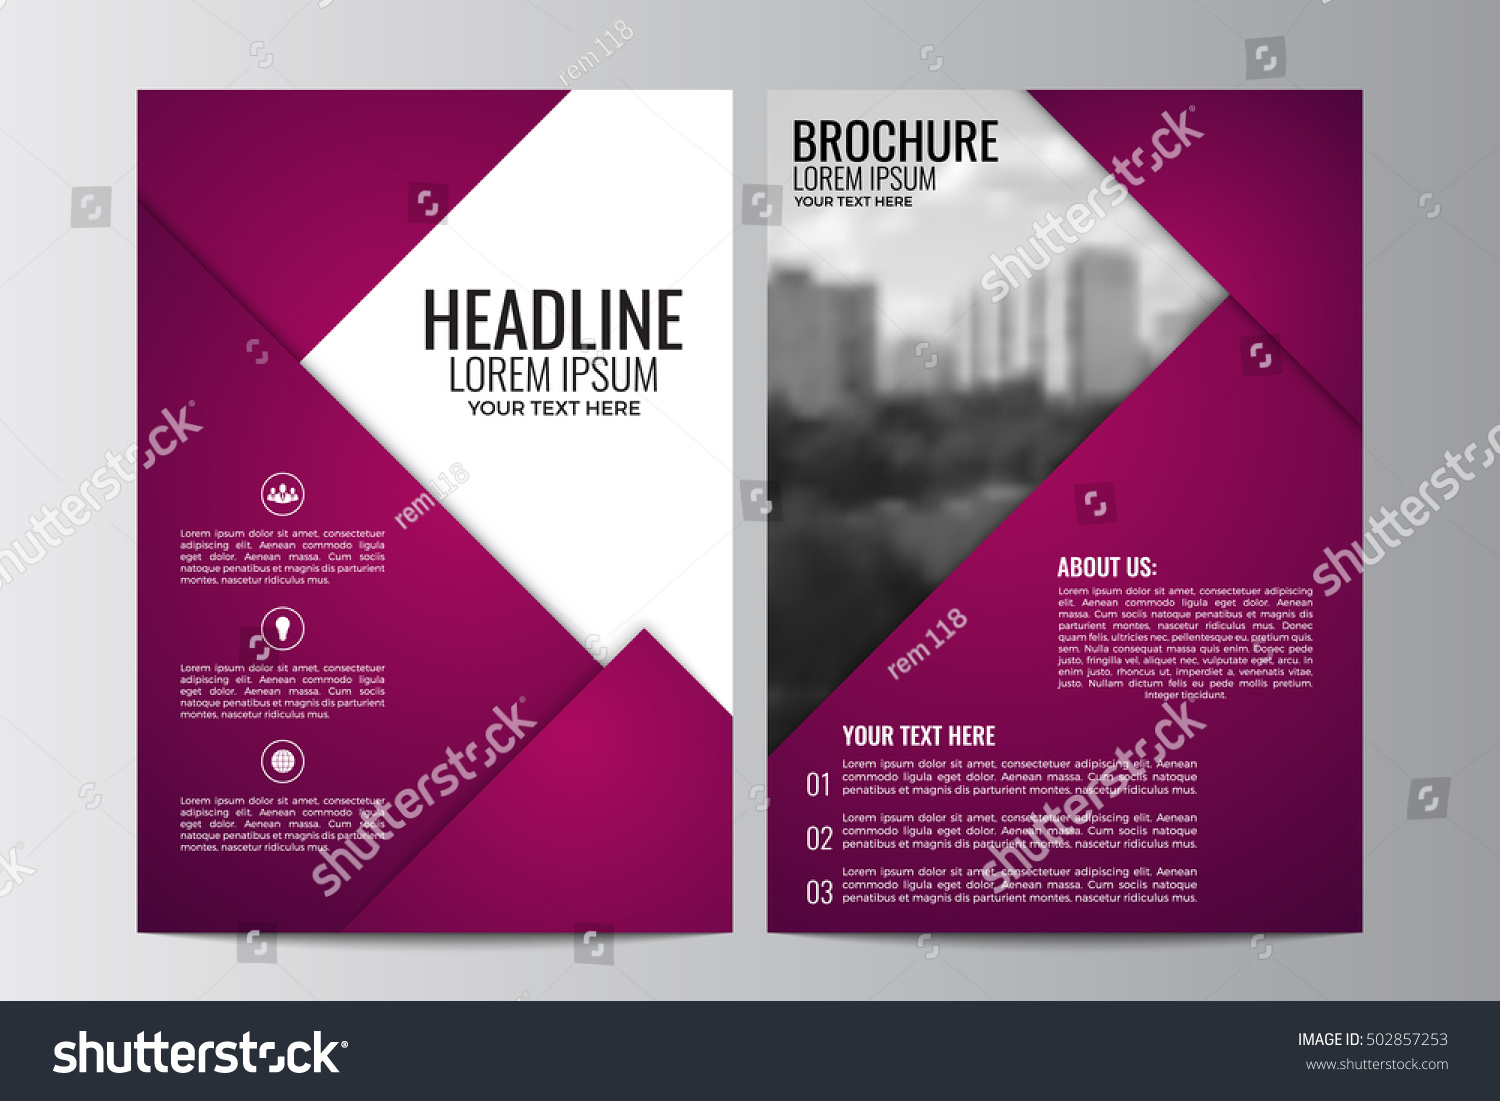 abstract flyer design background brochure template のベクター画像